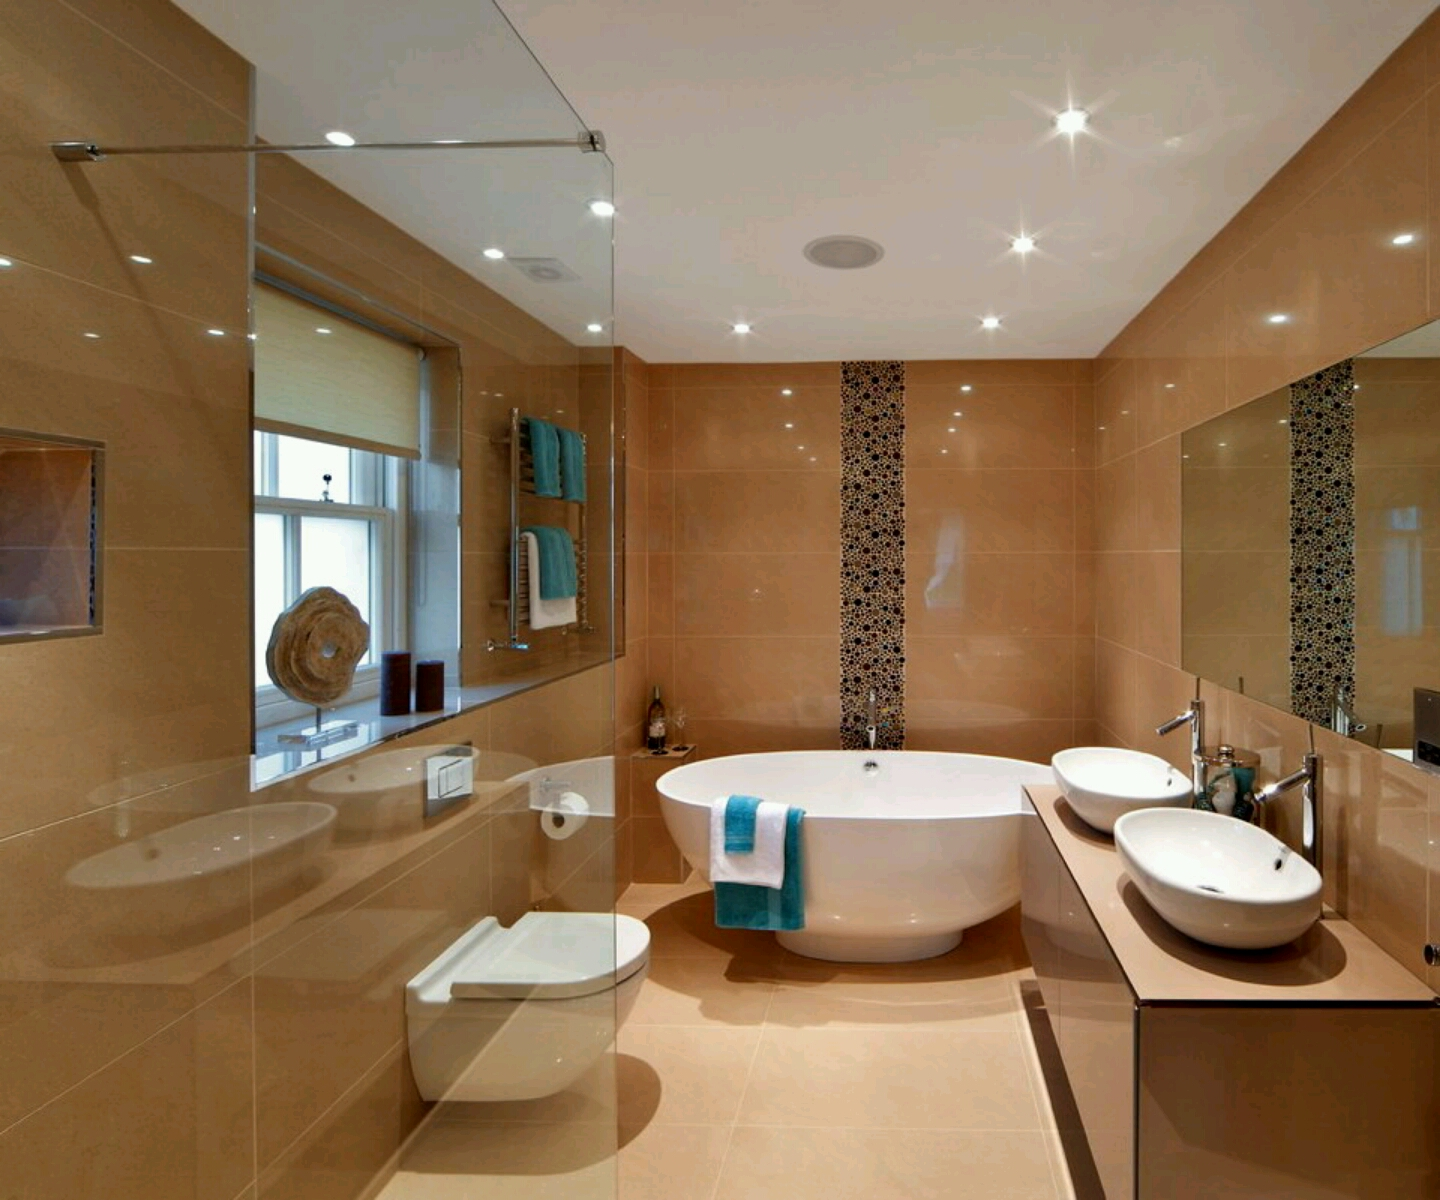 New home designs latest luxury modern bathrooms designs for Bath design ideas